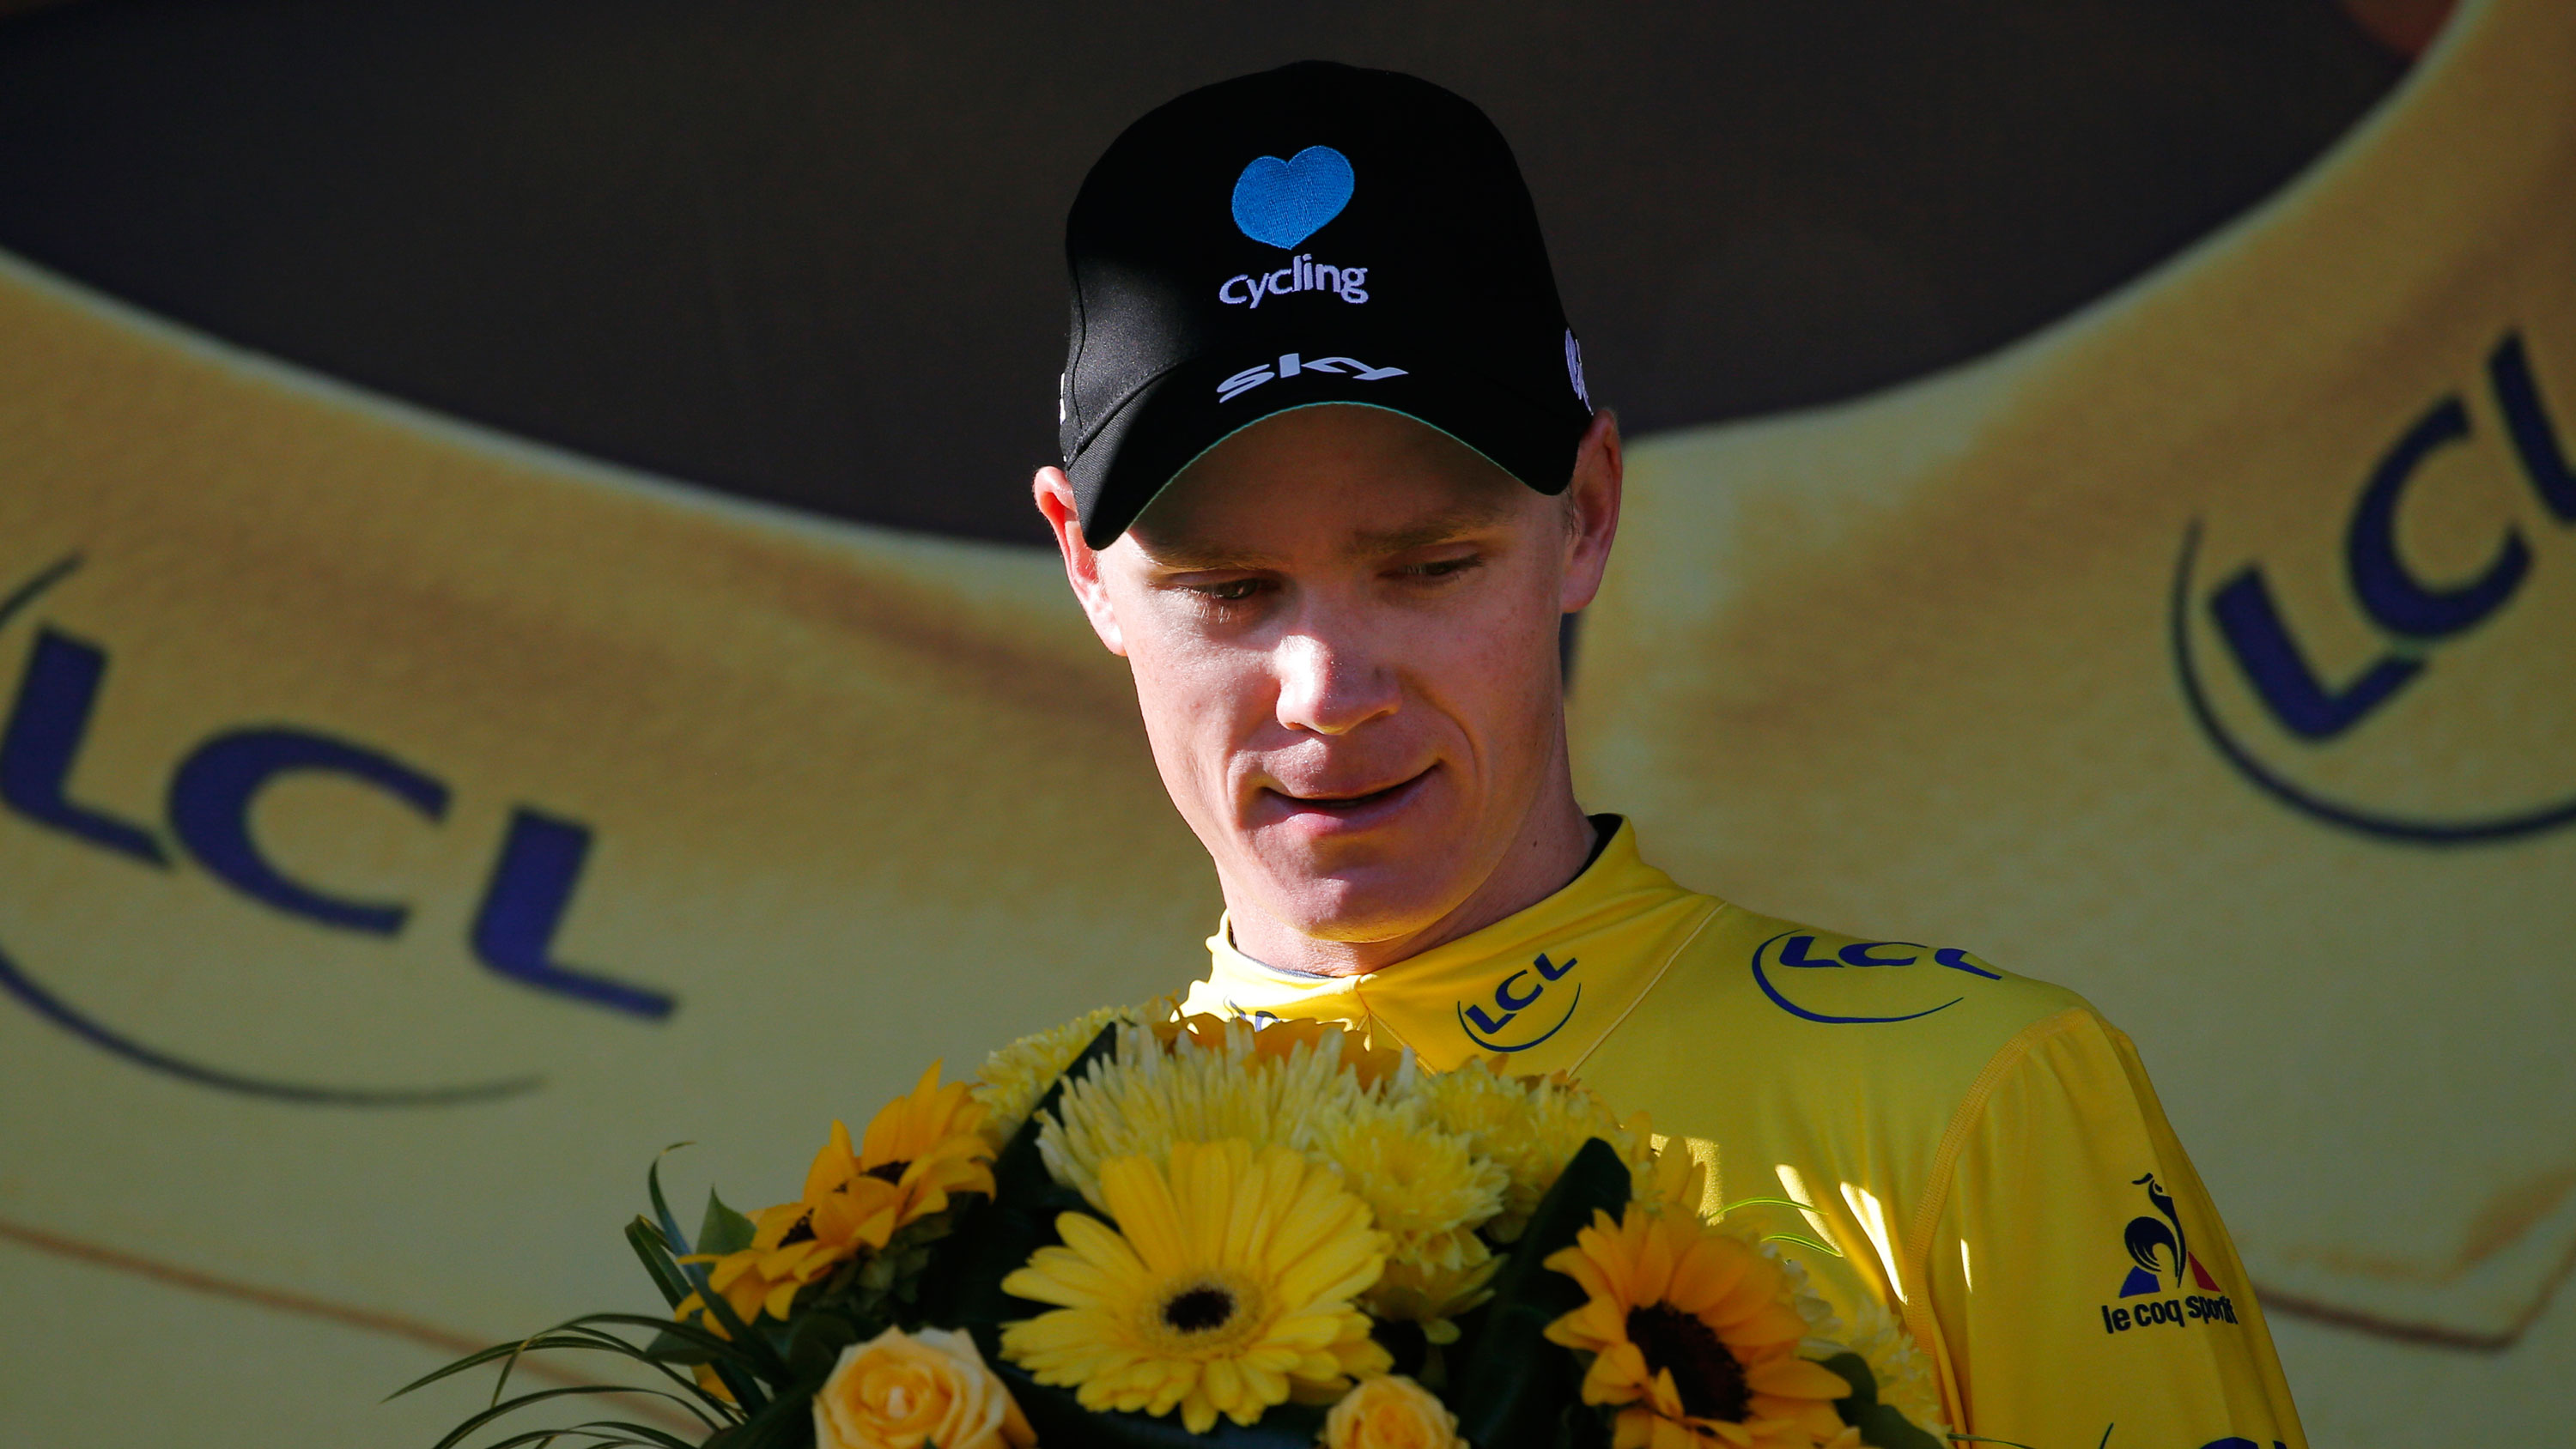 Chris Froome retains yellow jersey